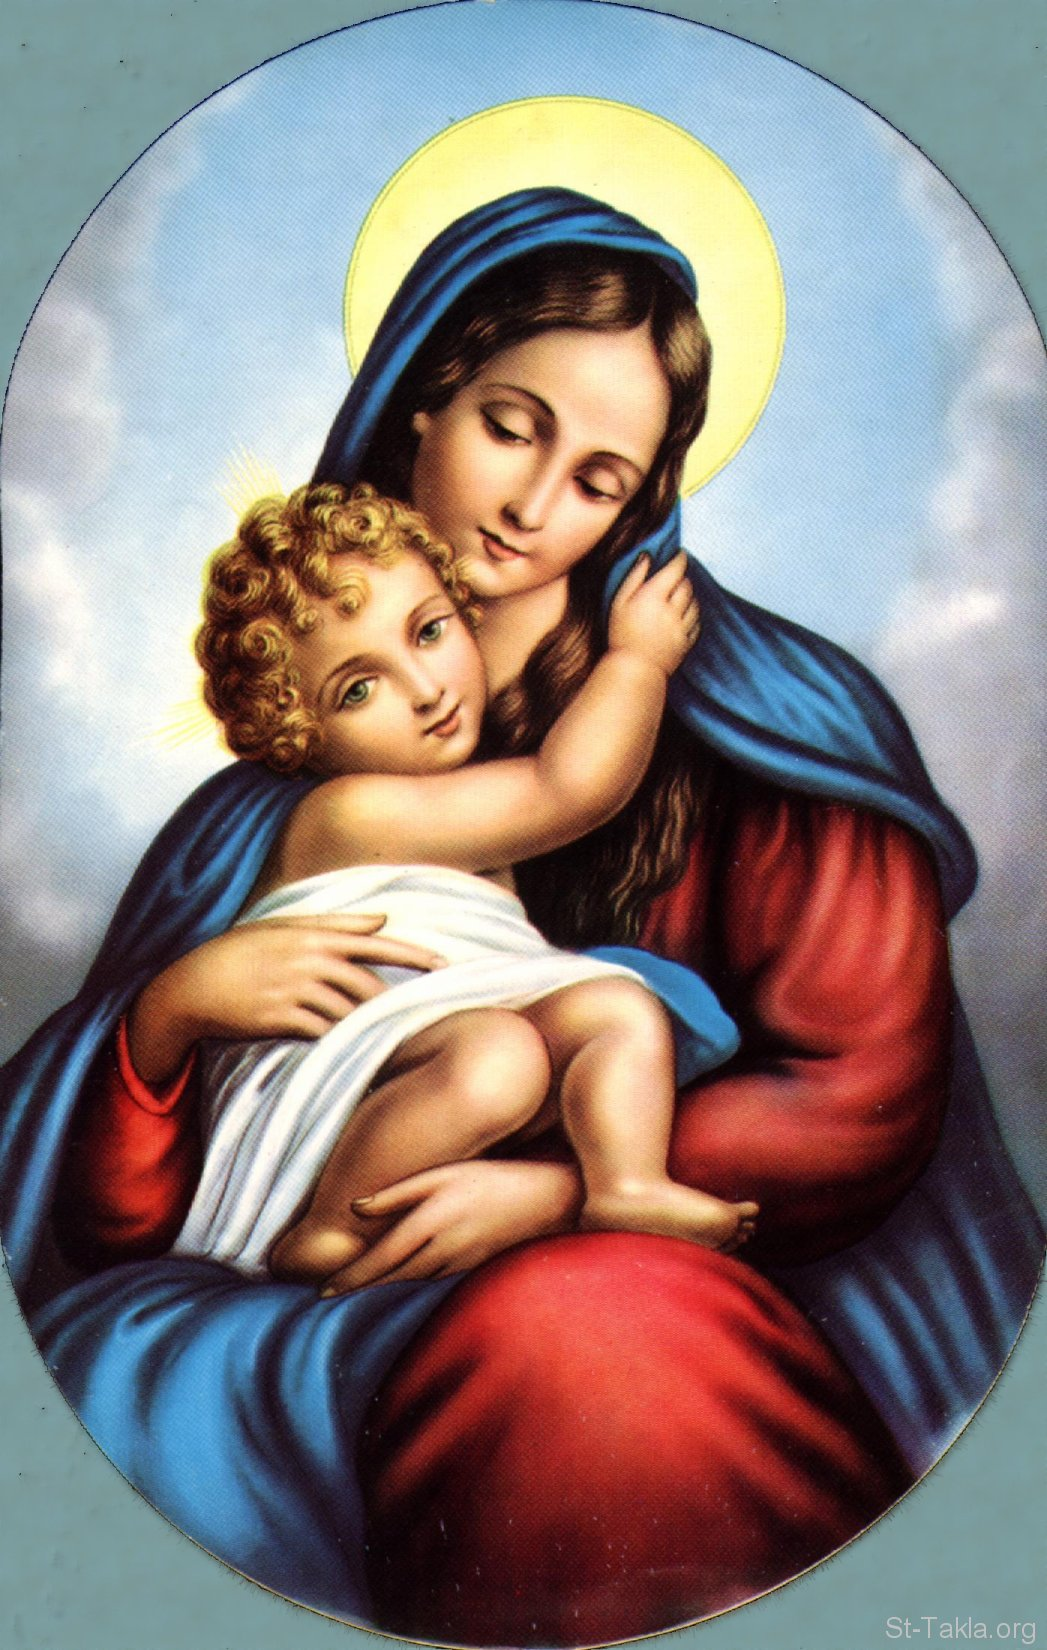 Mary wallpapers Religious HQ Mary pictures 4K Wallpapers 1047x1650